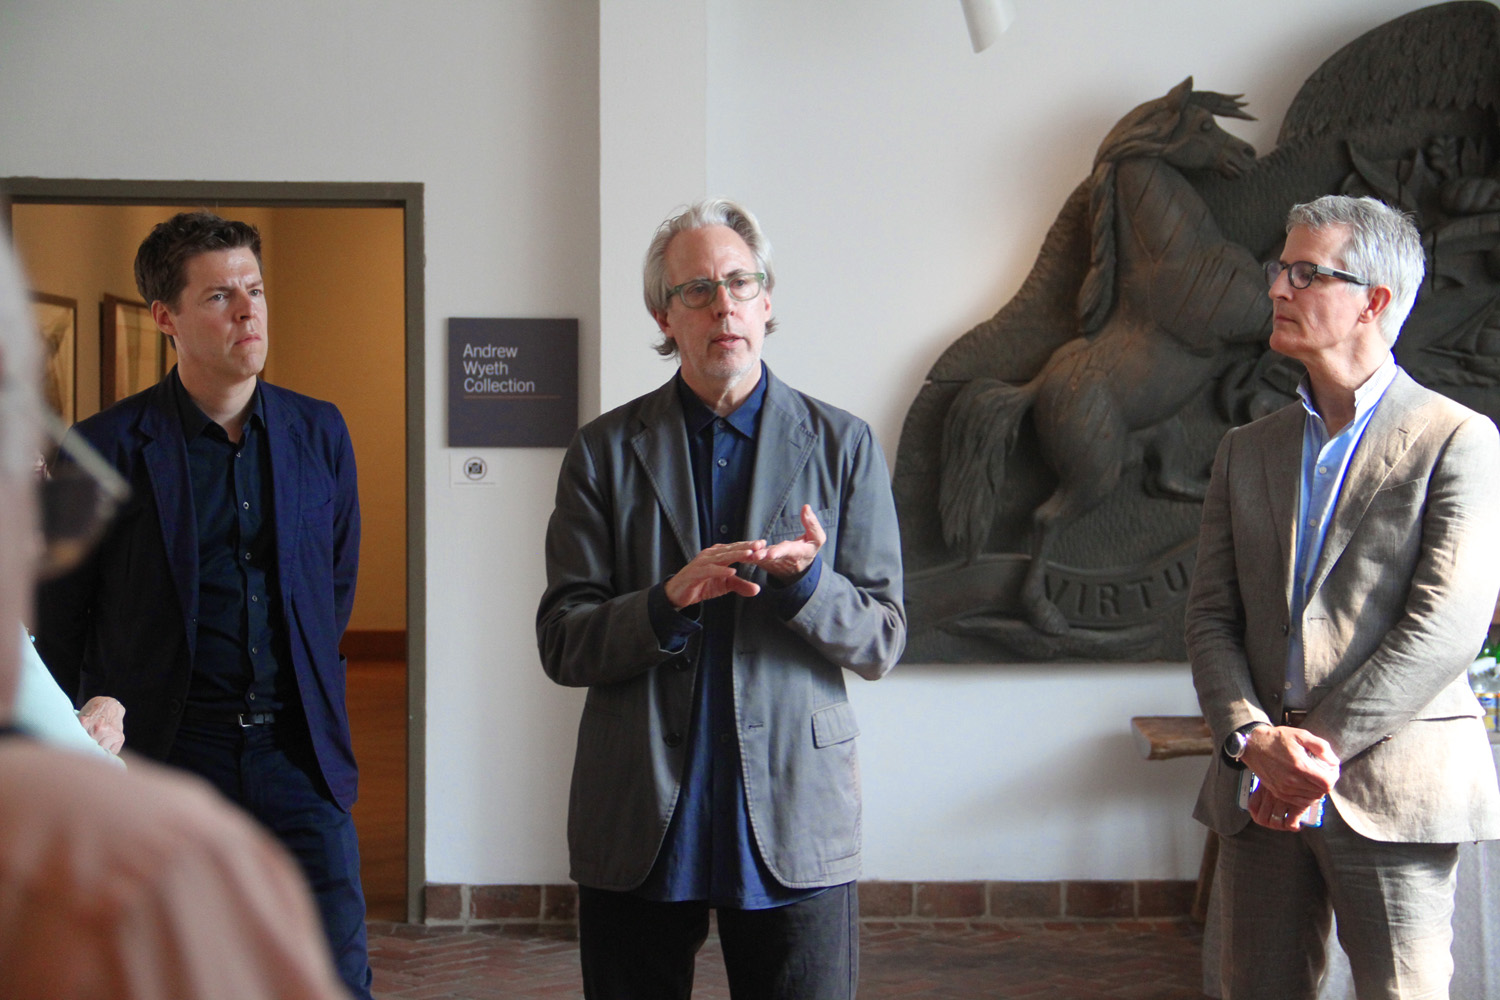 James Welling, center, flanked by Curator Philipp Kaiser (left) and Brandywine River Museum Director Thomas Padan (right), Photograph Job Piston, 2015